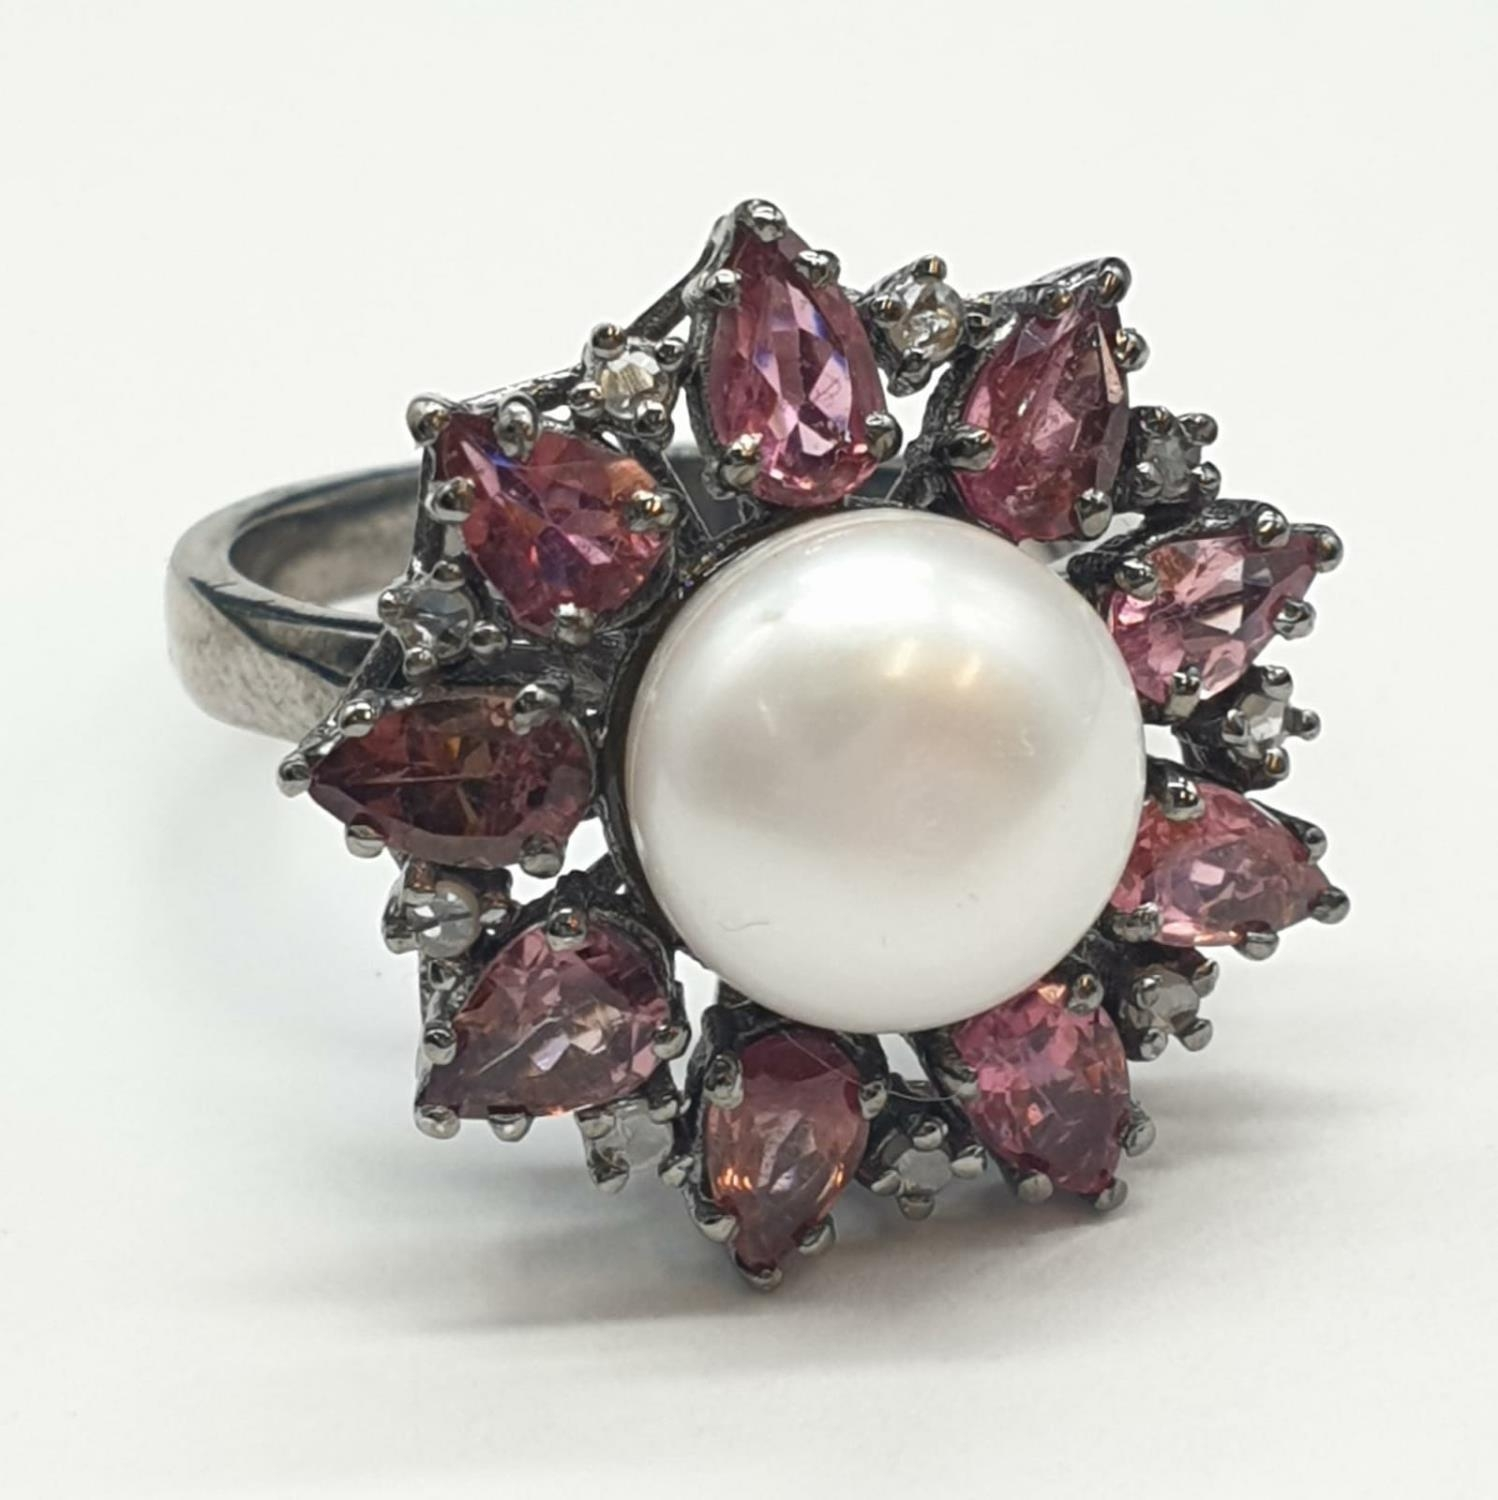 4.40 Cts Pearl & 2.35 Cts Pink Tourmalines set inside a 925 Blackened silver ring. With 0.20 Cts